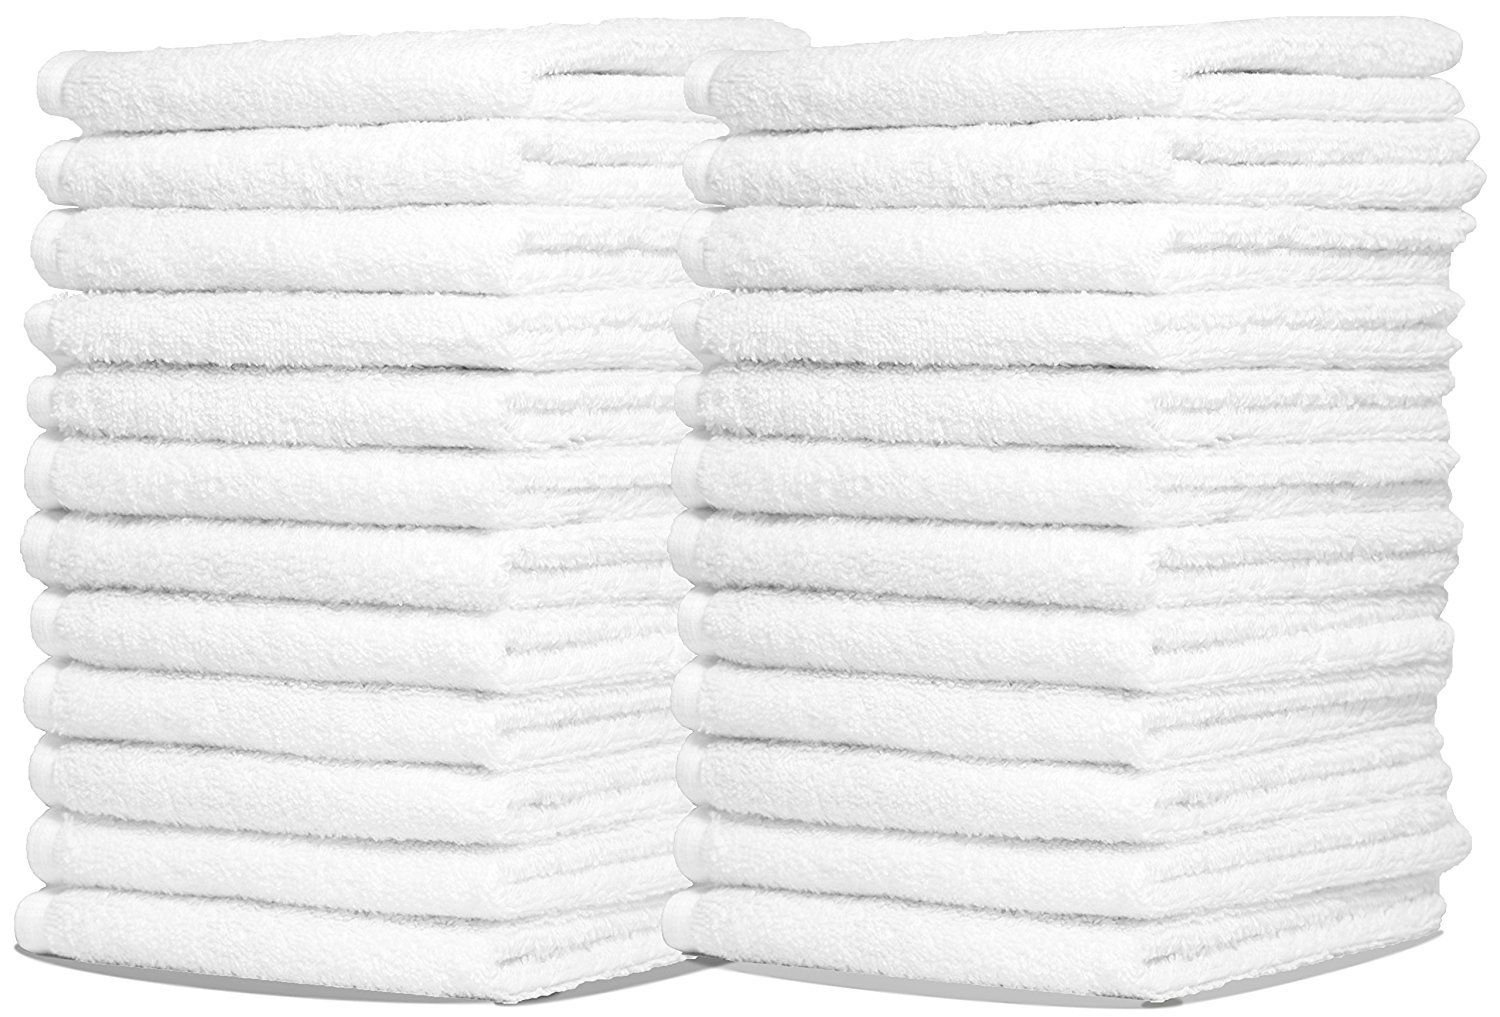 """Bulk Spa White Washcloths – Set of 25 – Size 12"""" x 12"""" – Thick Loop Pile Washcloth – Absorbent and Soft 100% Ring-Spun Cotton Wash Cloth – Lint Free Face Towel – Wash Cloths Perfect for Bathroom"""